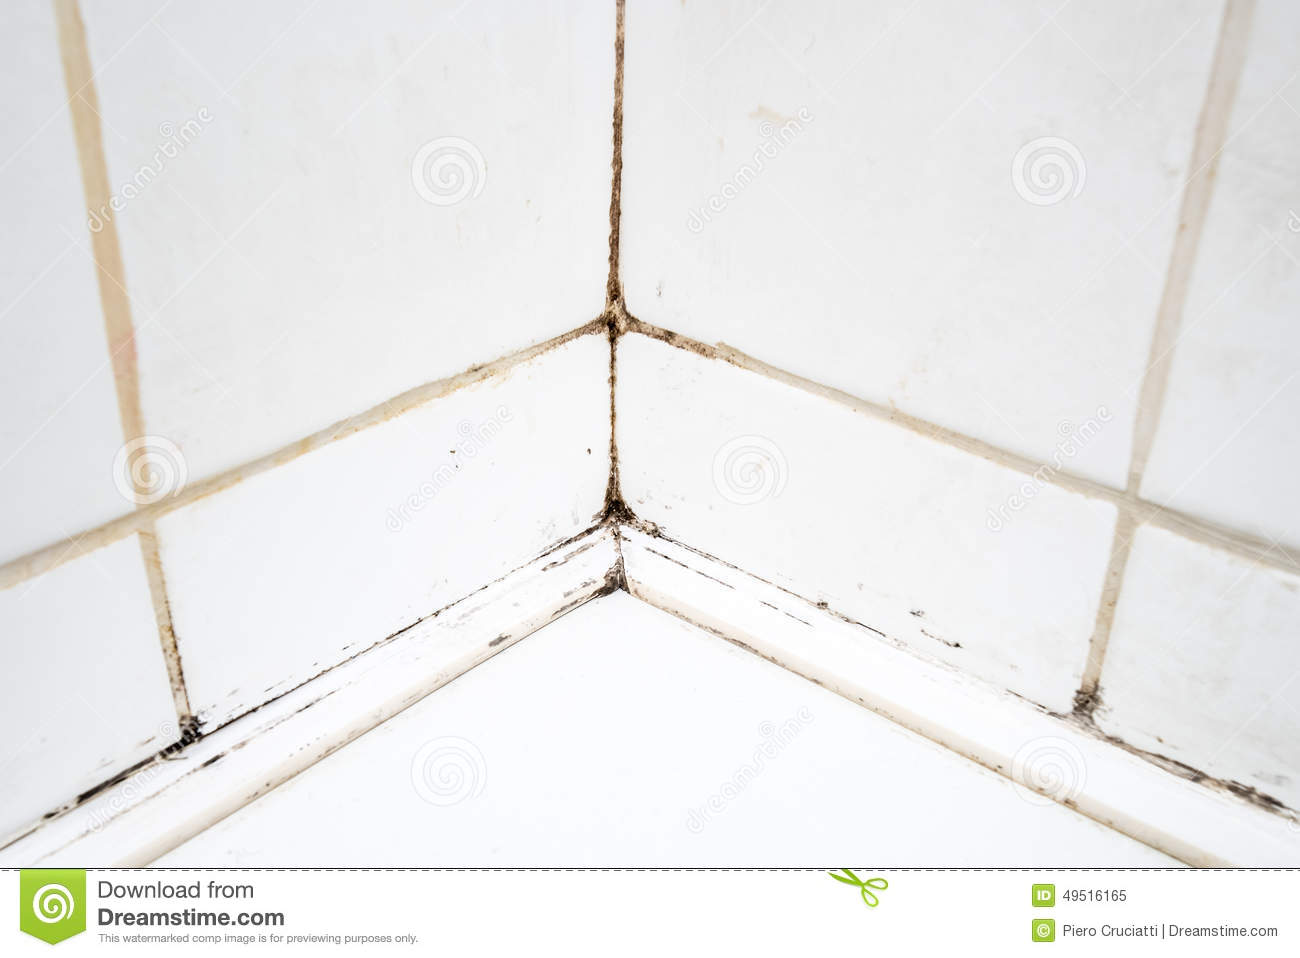 Dirty Tiles In Bathroom Shower Stock Image - Image of joint, dirty ...